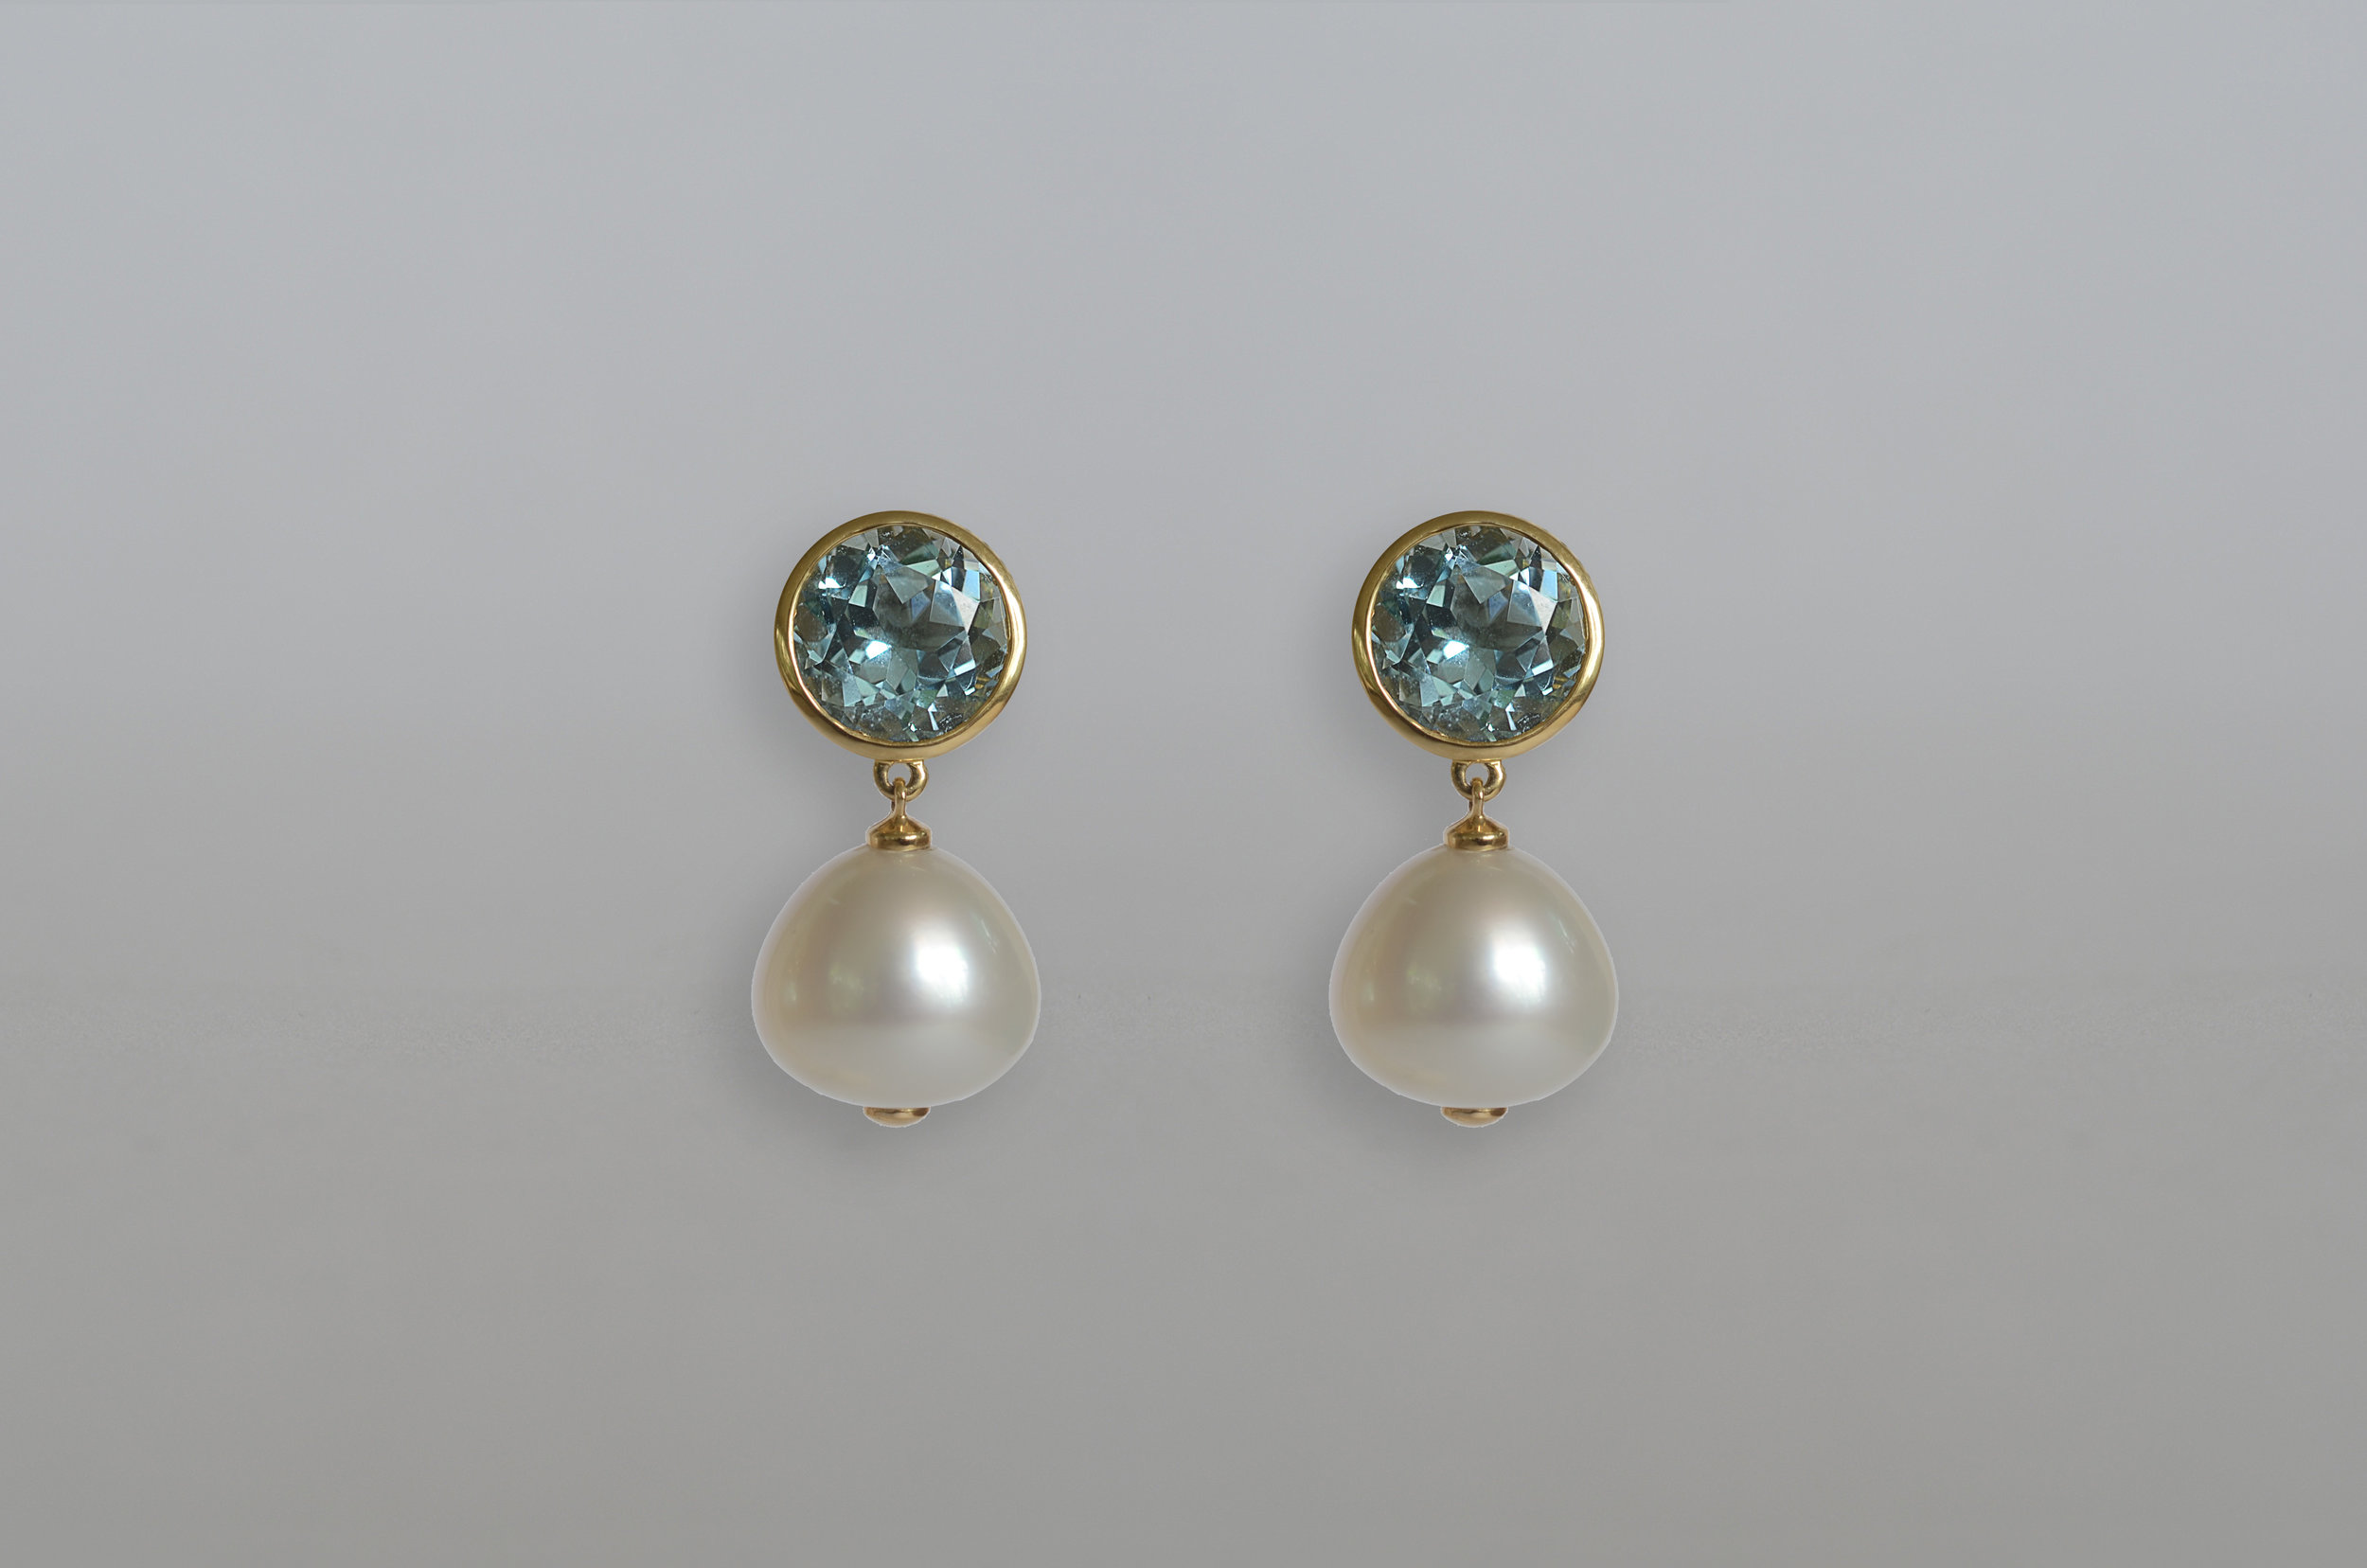 Pearl and Blue Earrings with gradient.jpg